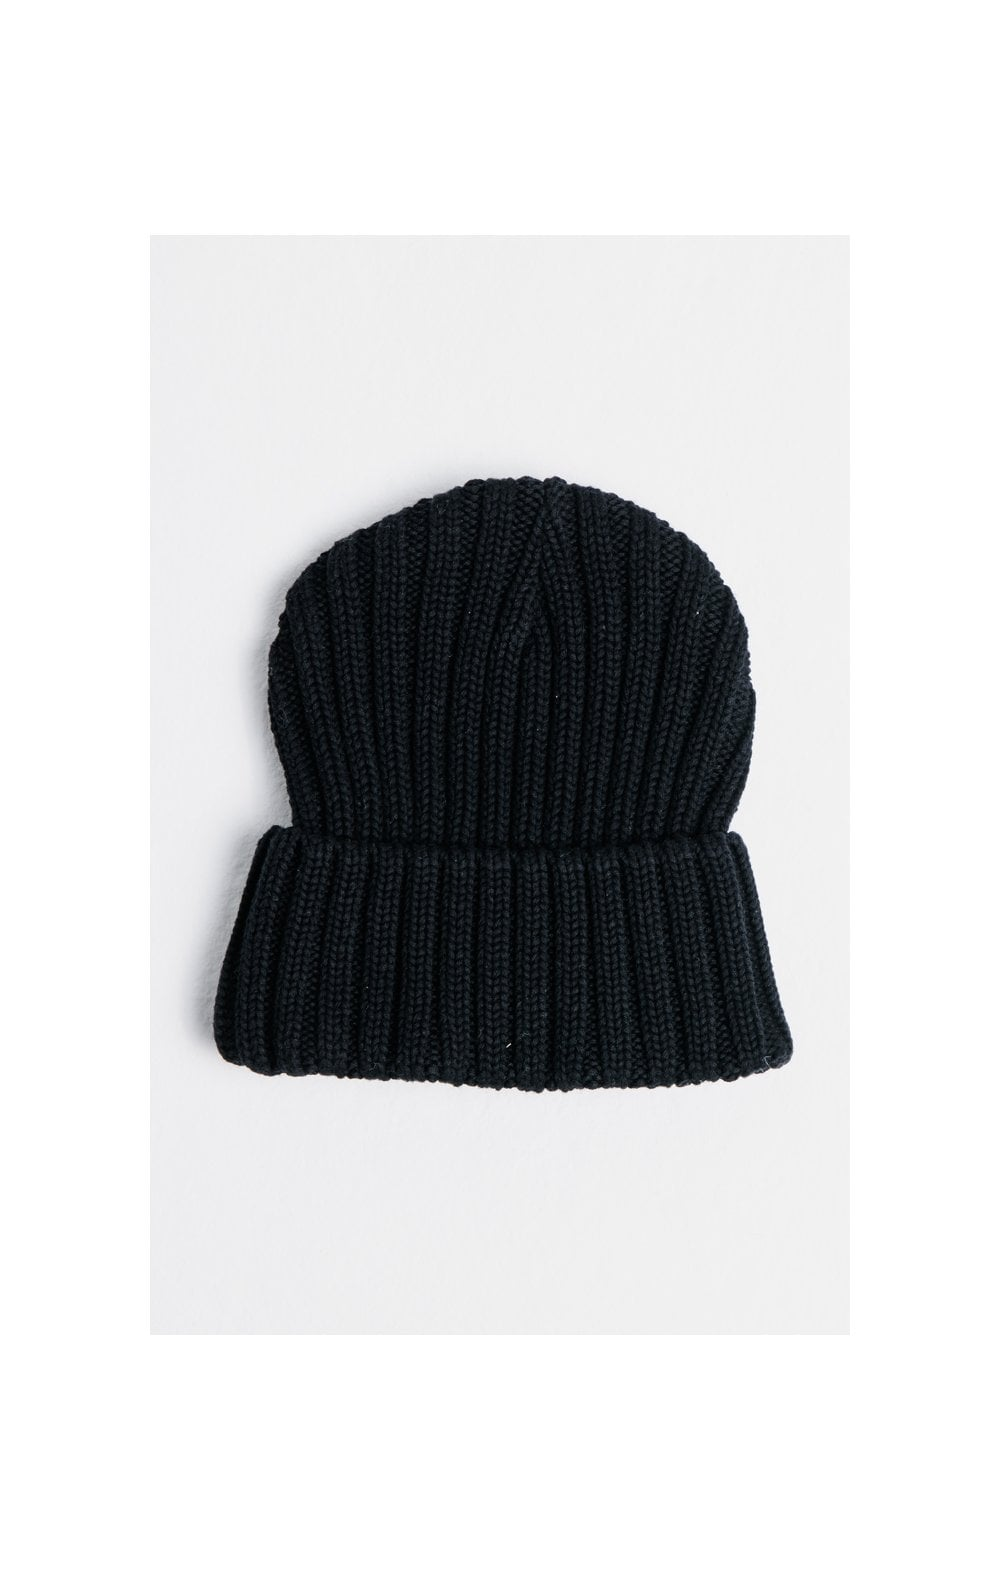 SikSilk Rib Cuff Knit Beanie - Black & Gold (1)